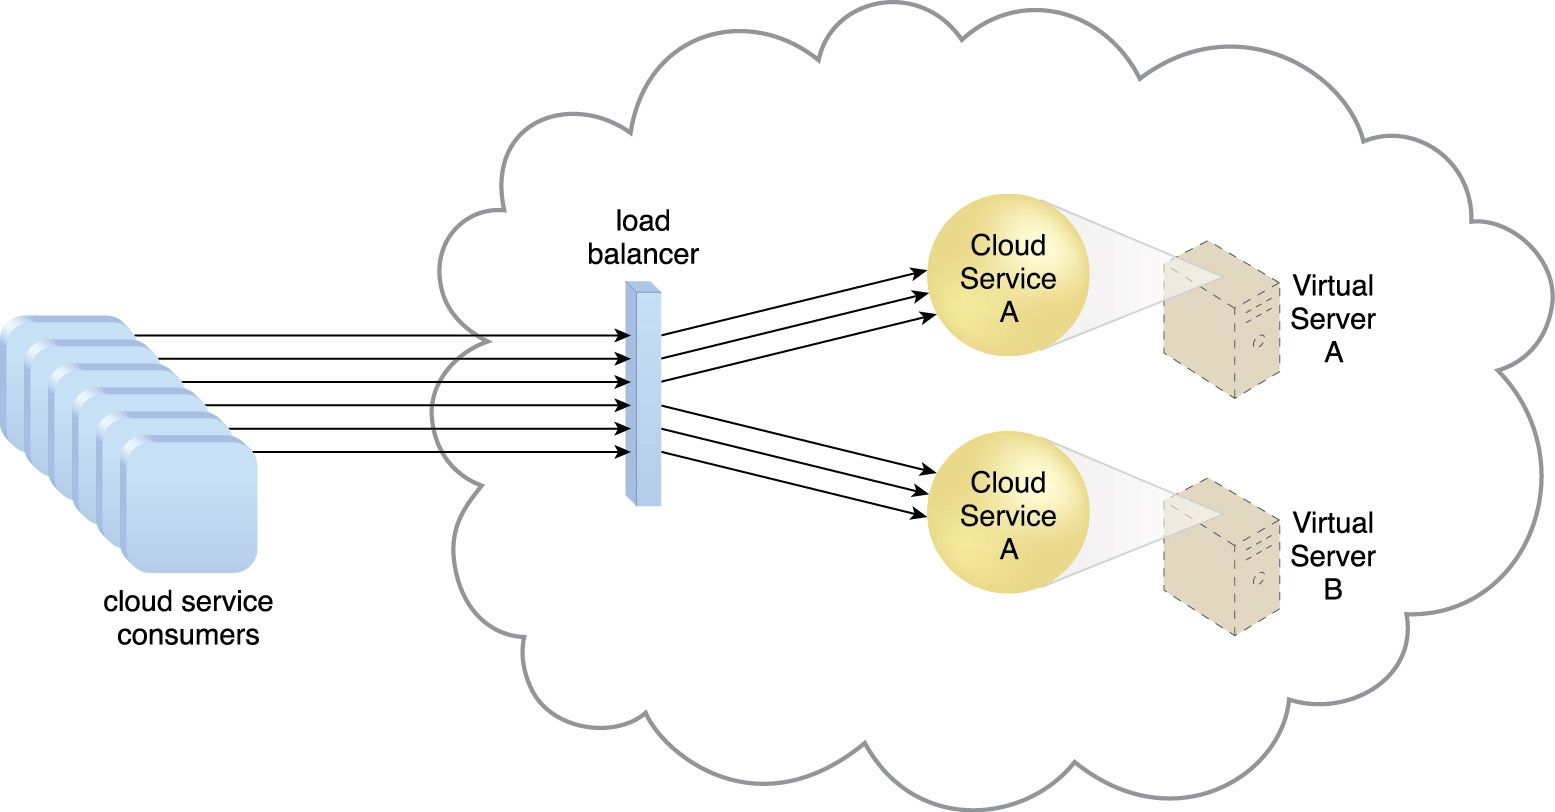 cloud balancer